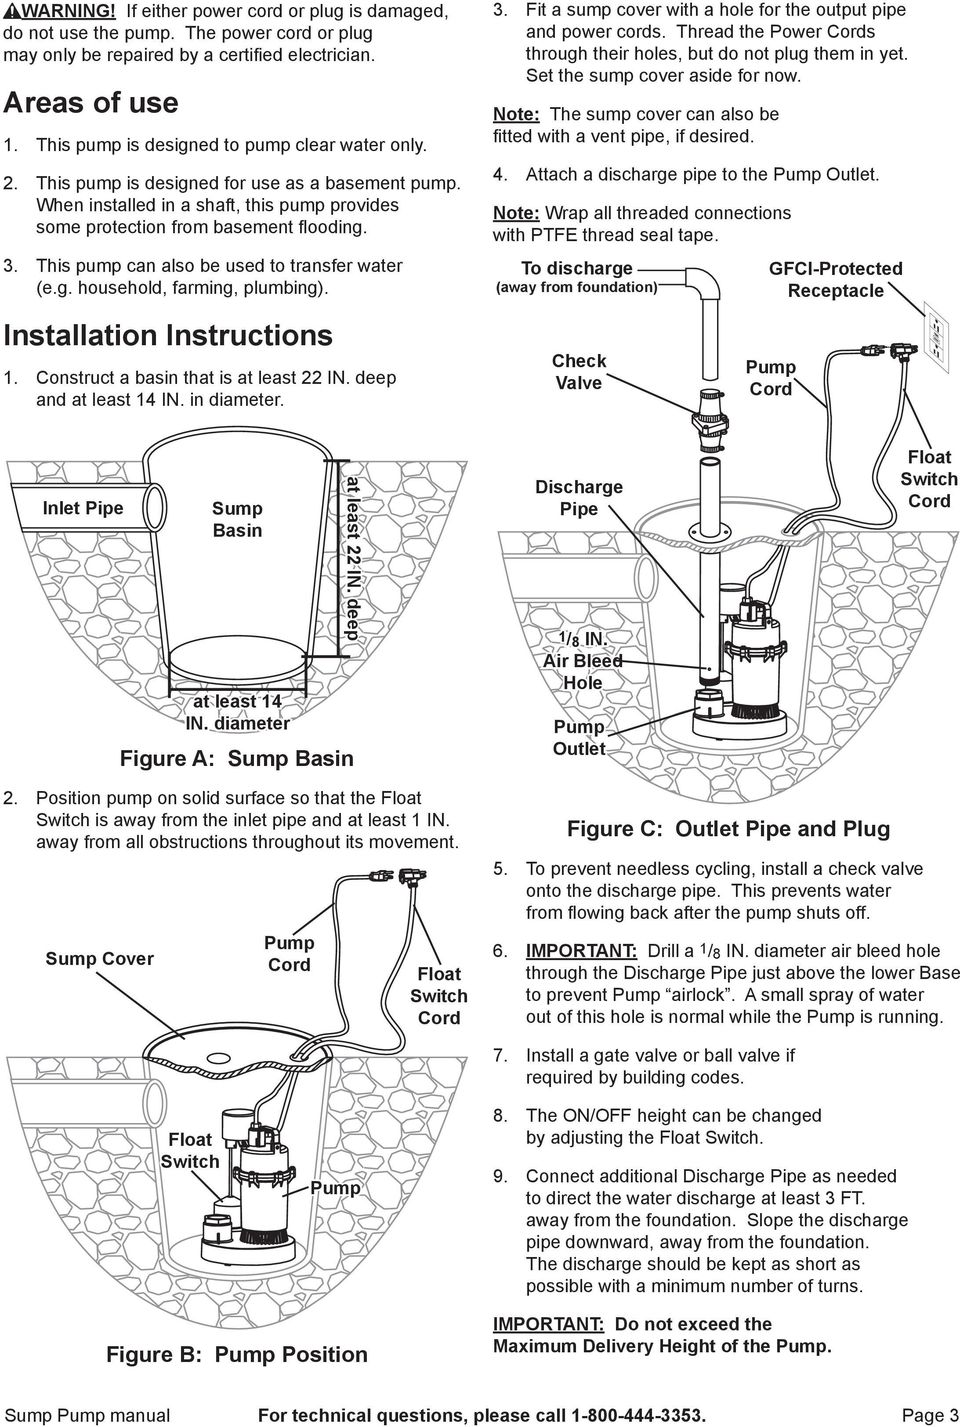 This pump can also be used to transfer water (e.g. household, farming, plumbing). Installation Instructions 1. Construct a basin that is at least 22 IN. deep and at least 14 IN. in diameter. 3.